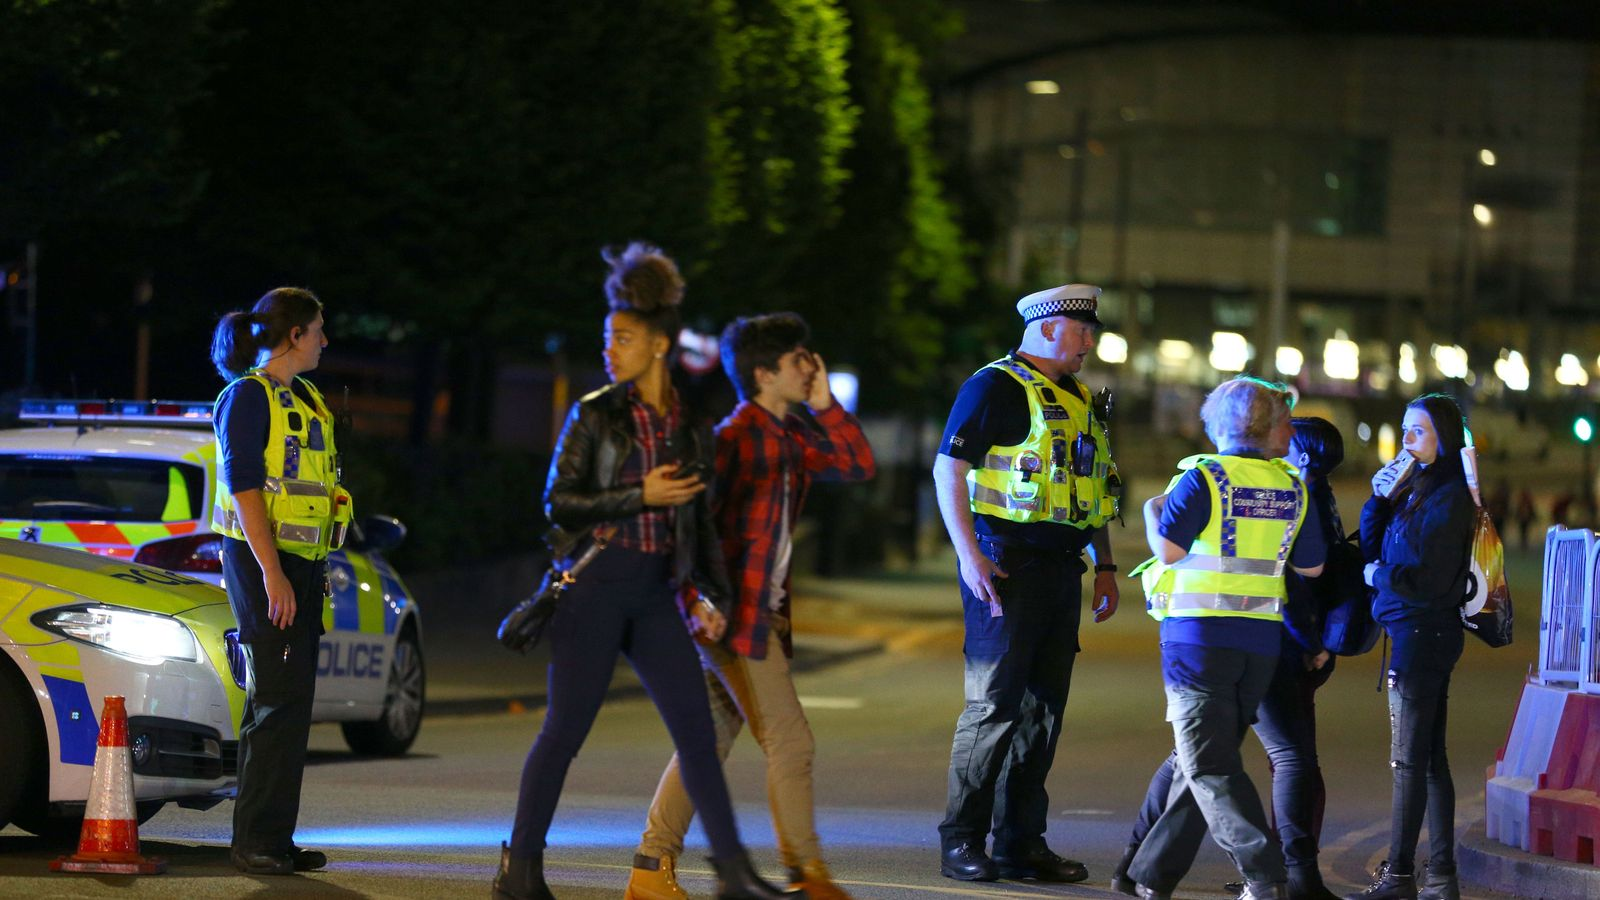 More arrests over Manchester bombing as United Kingdom raises terror alert